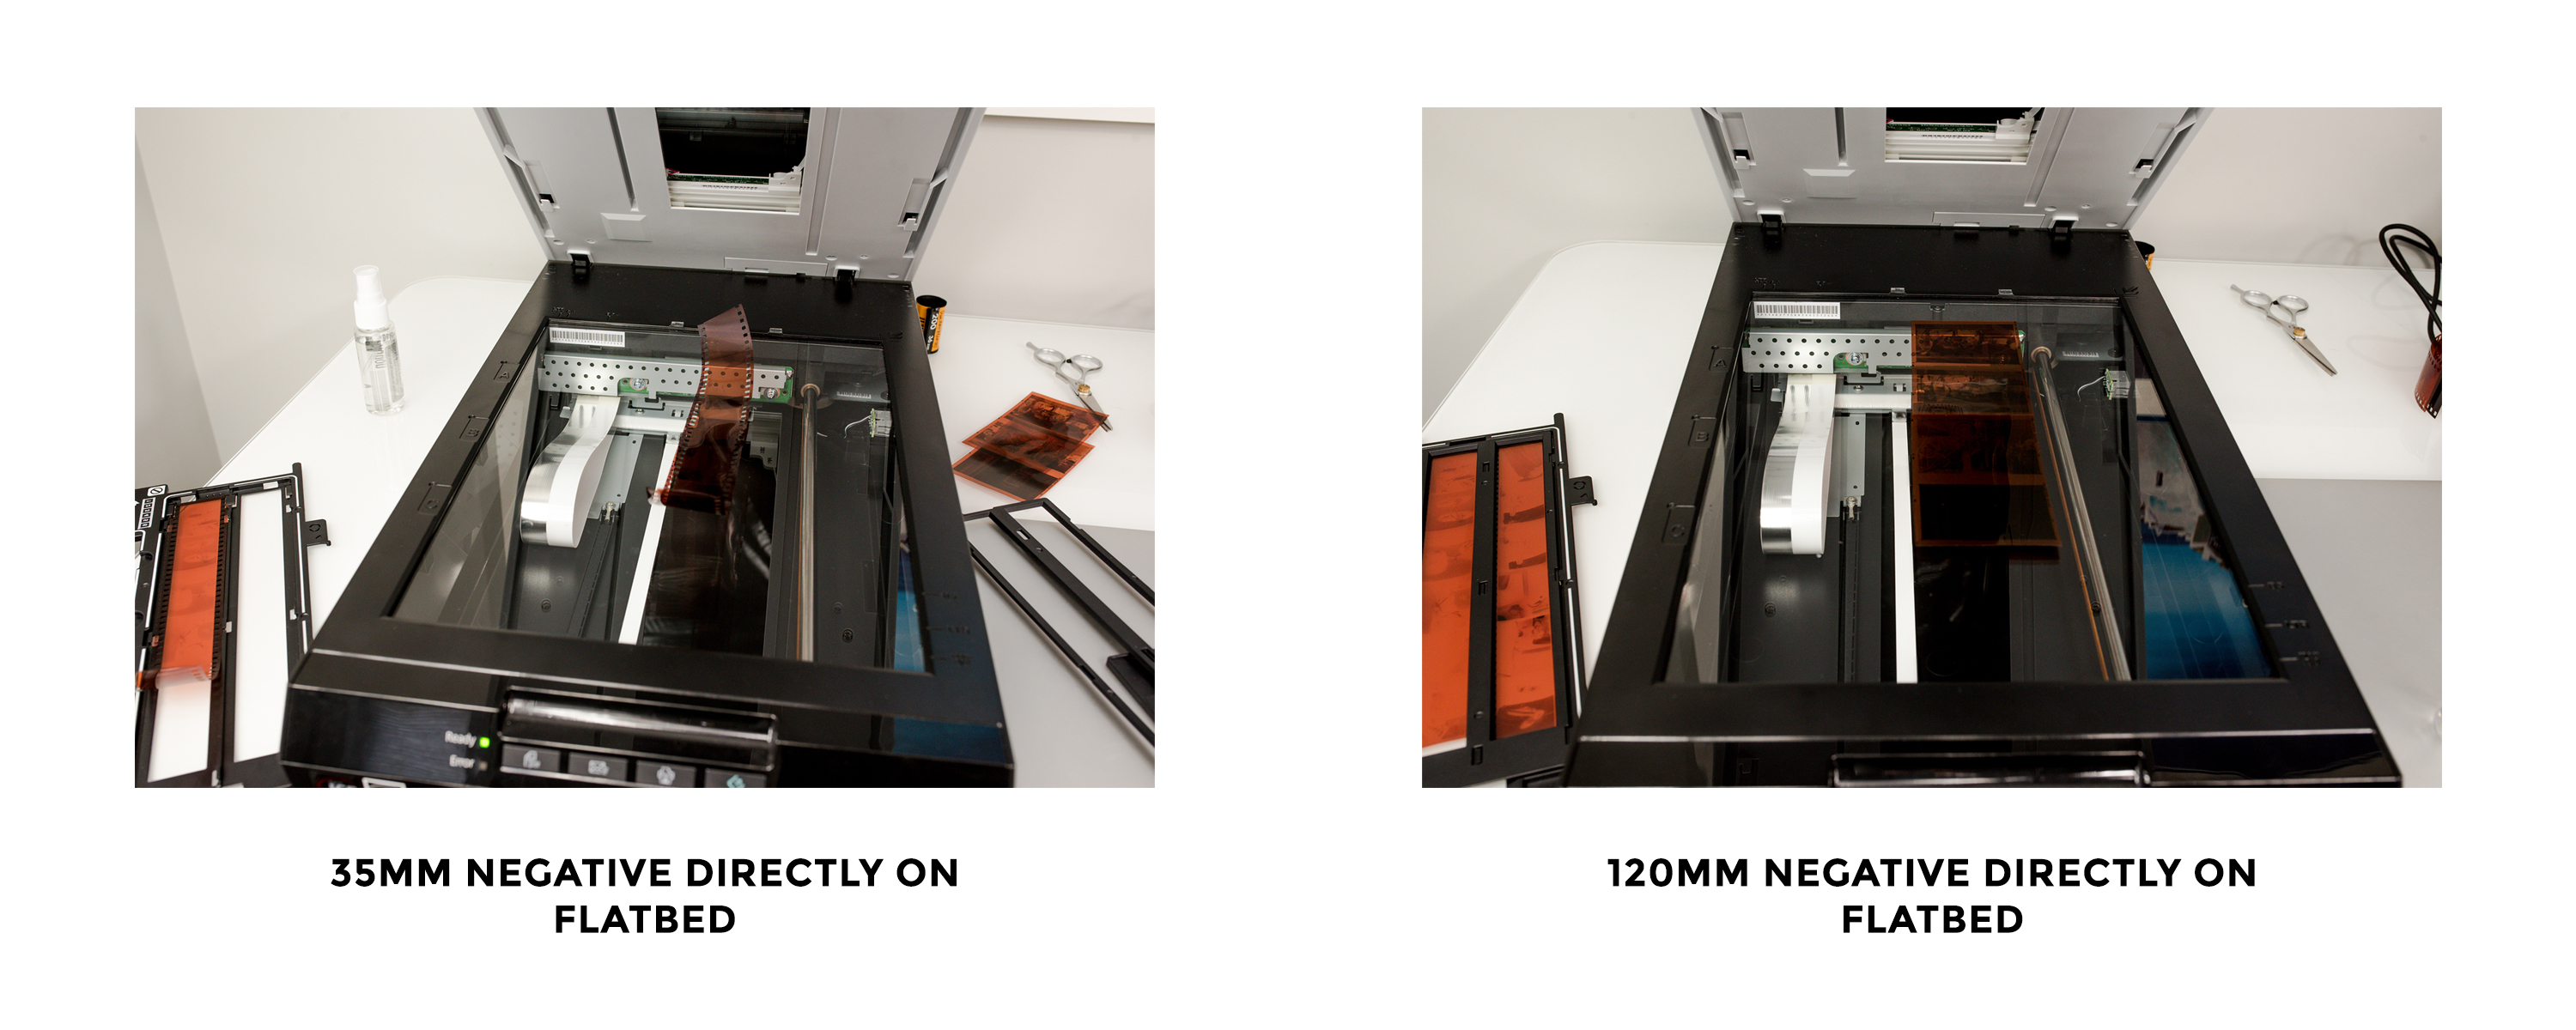 Directly on Flatbed - Scanning Analog Film with the Epson Perfection v550 Photo Scanner - FilterGrade